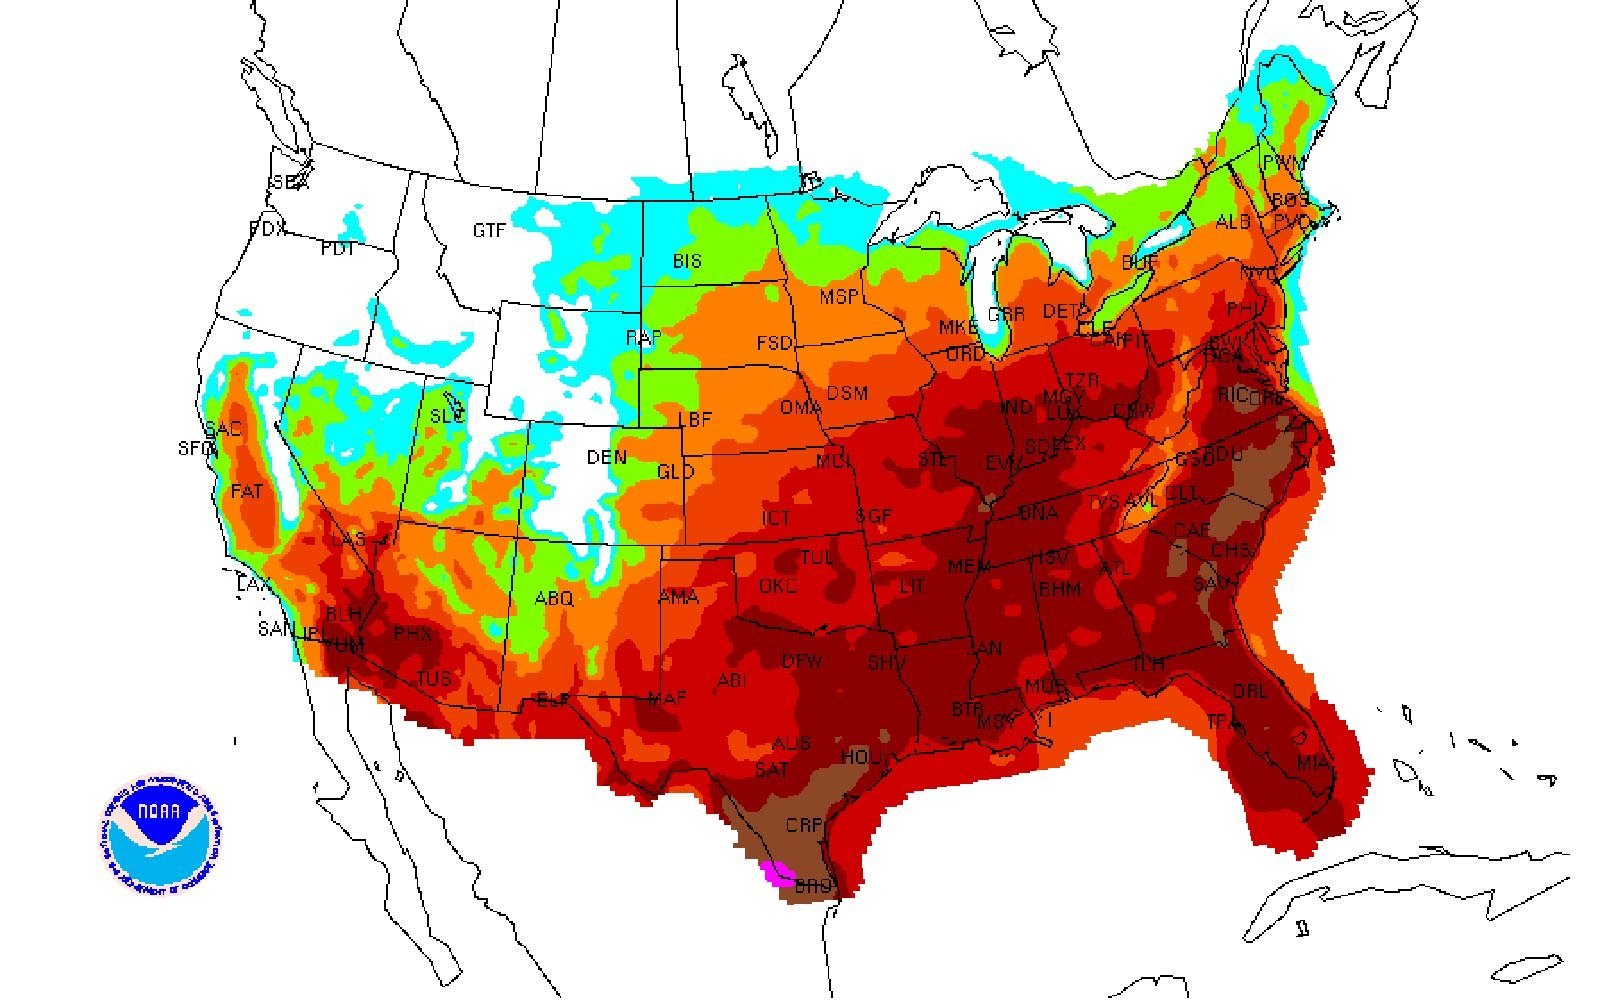 The first heat wave of the year is on the way